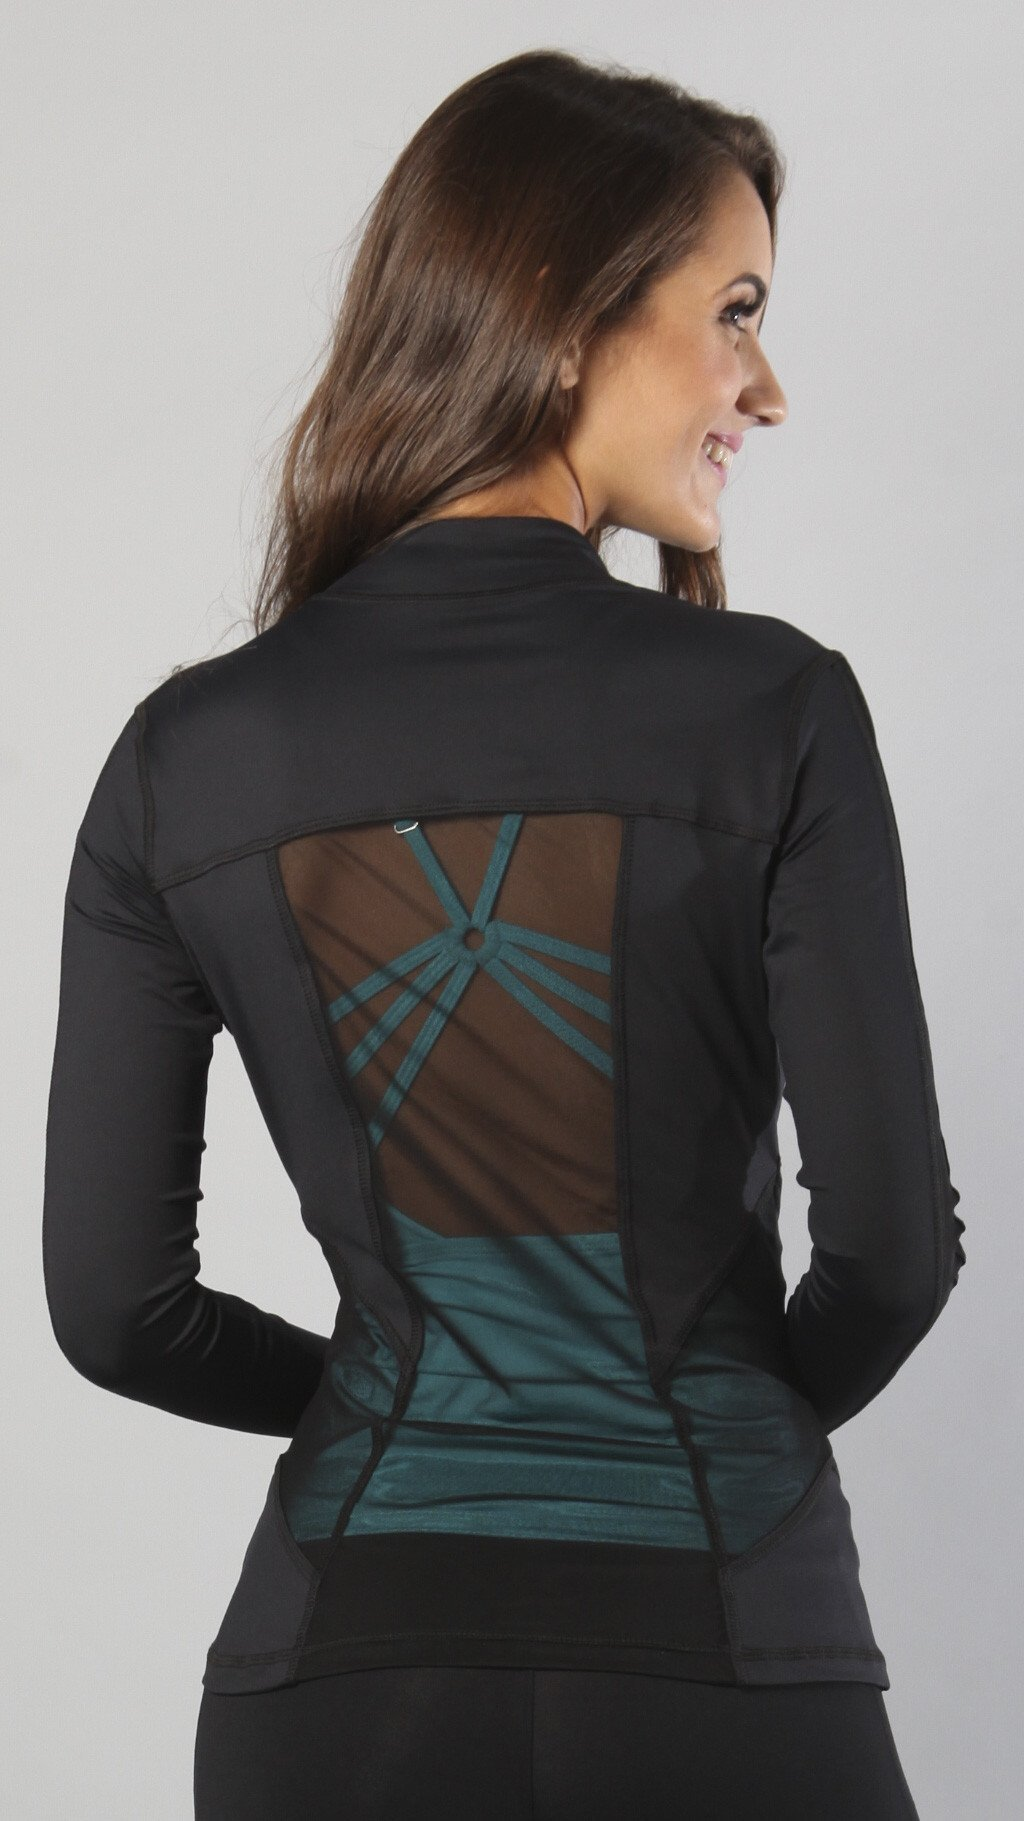 Designer Black Long Top with Long Sleeve J818 - Equilibrium Activewear - Image 2